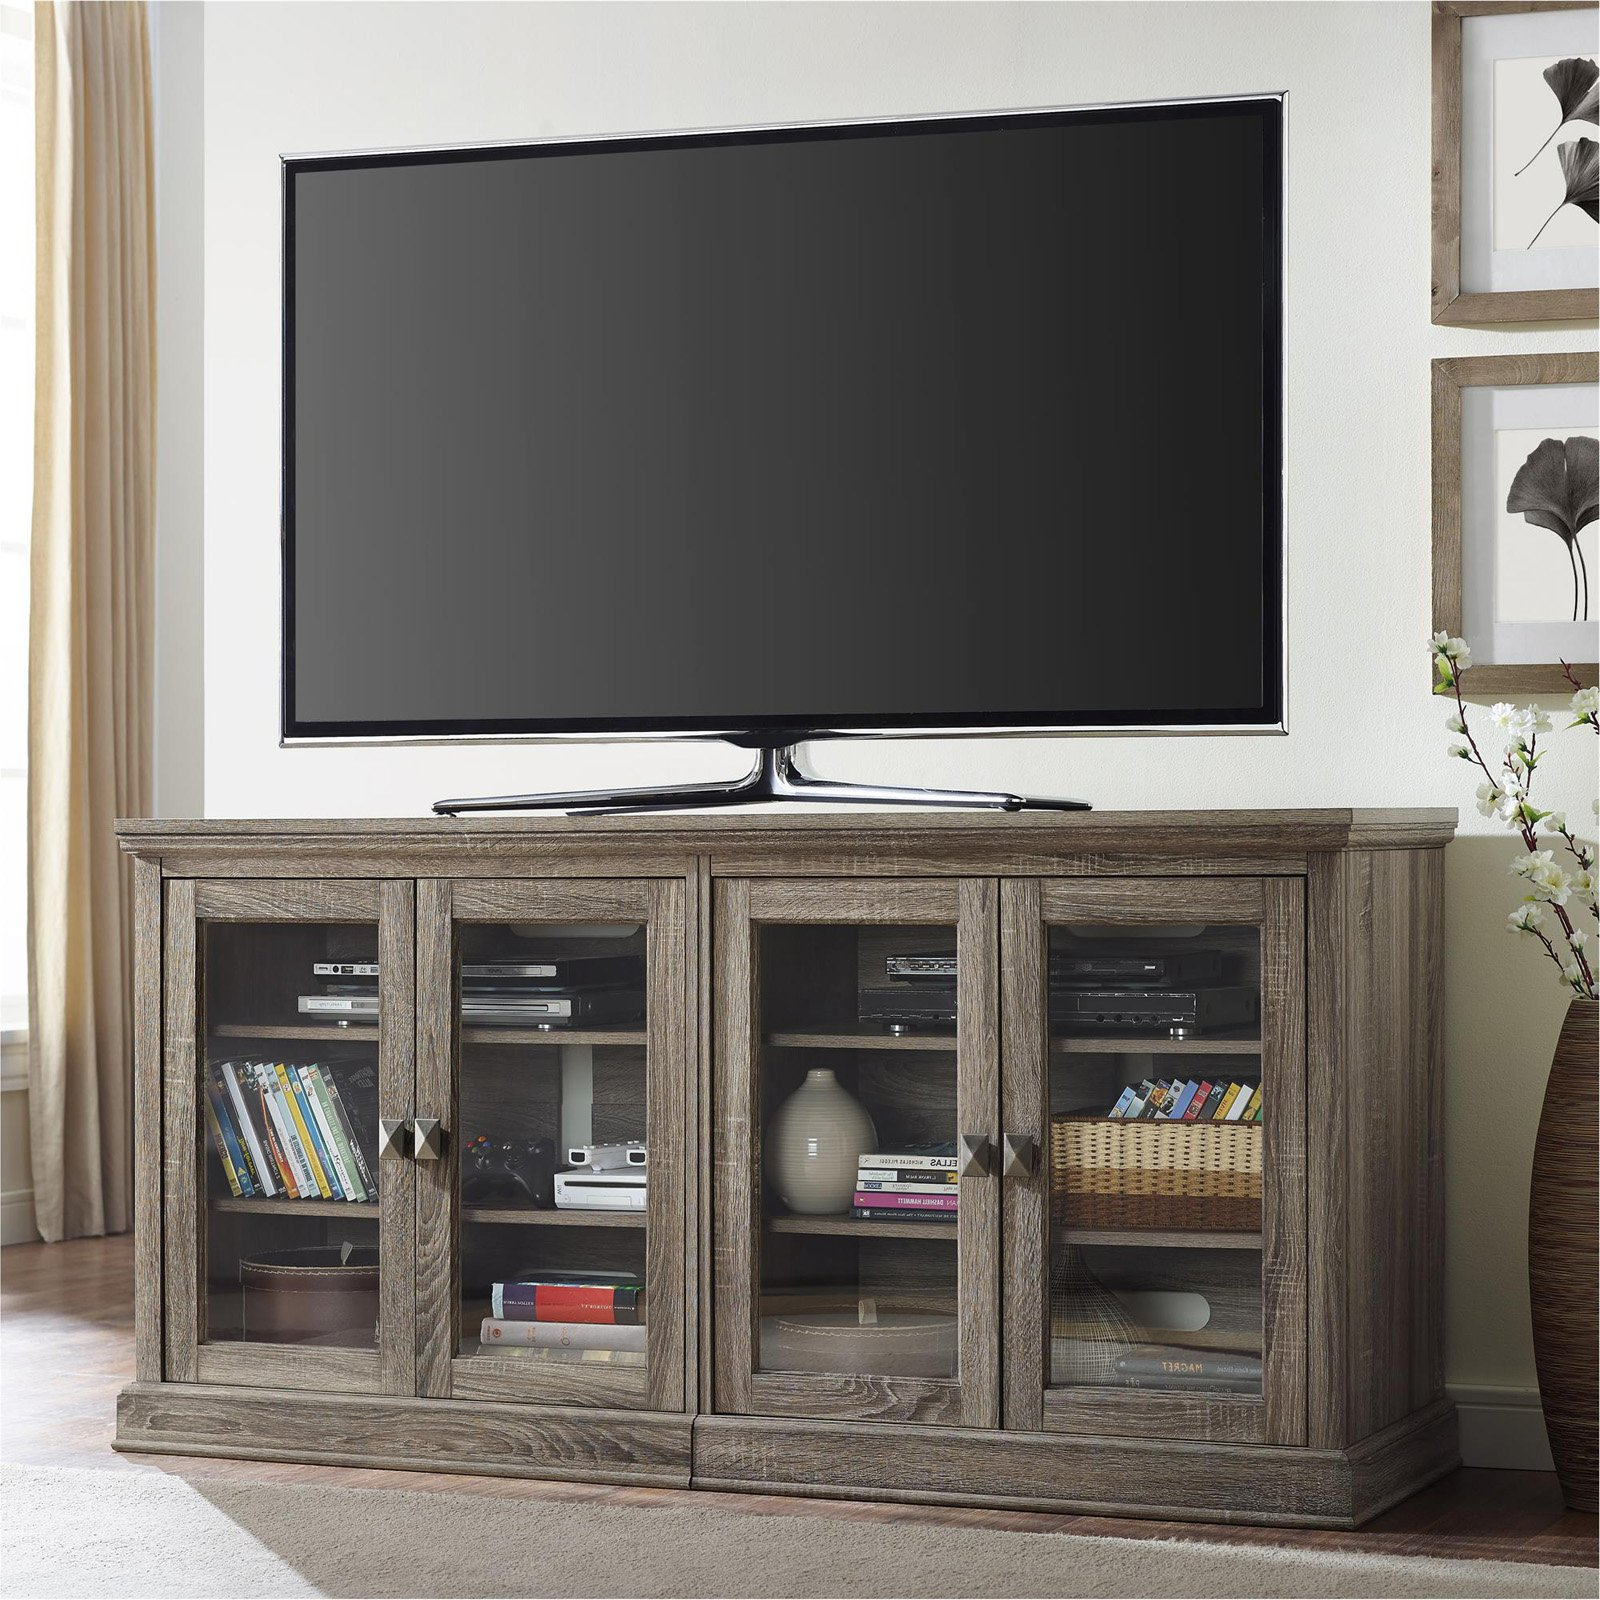 Ameriwood Home Bennett Tv Stand With Glass Doors For Tvs Up To 70 In Trendy Oak Tv Stands With Glass Doors (View 2 of 20)